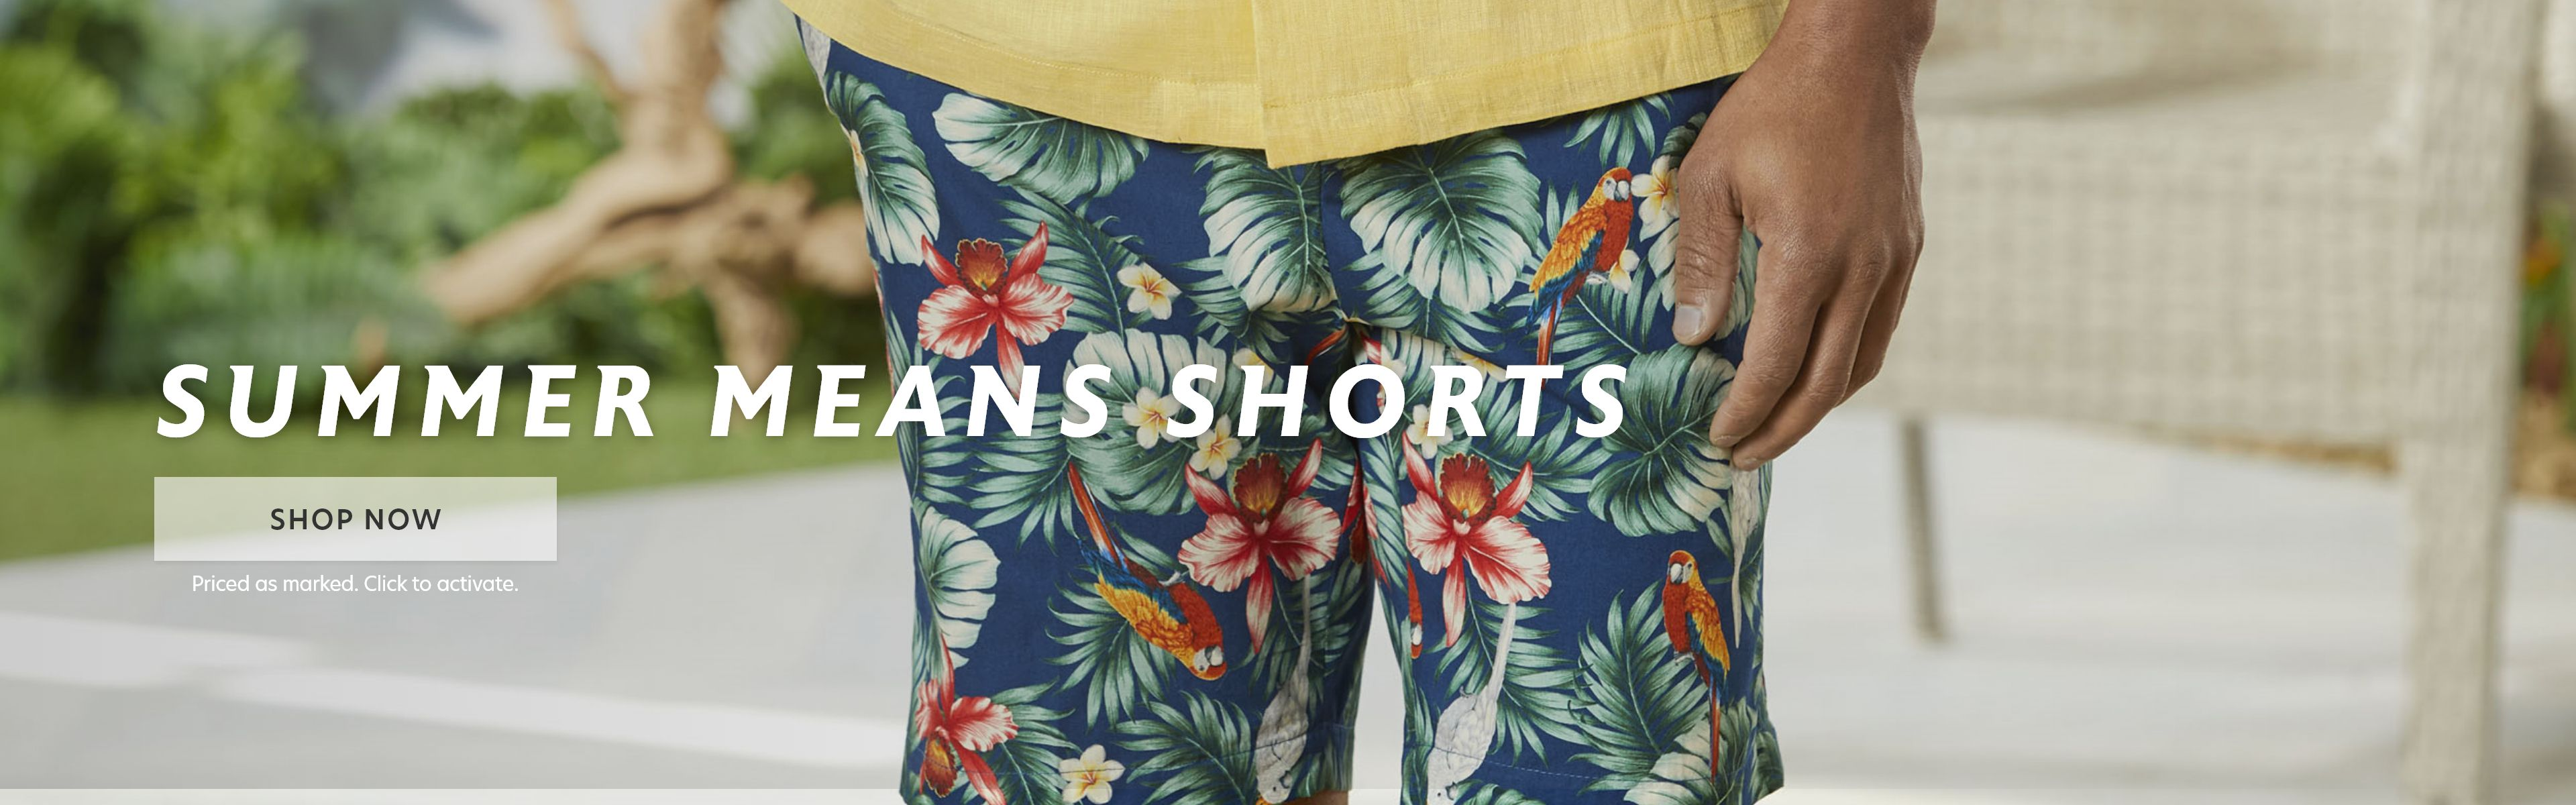 Summer Means Shorts